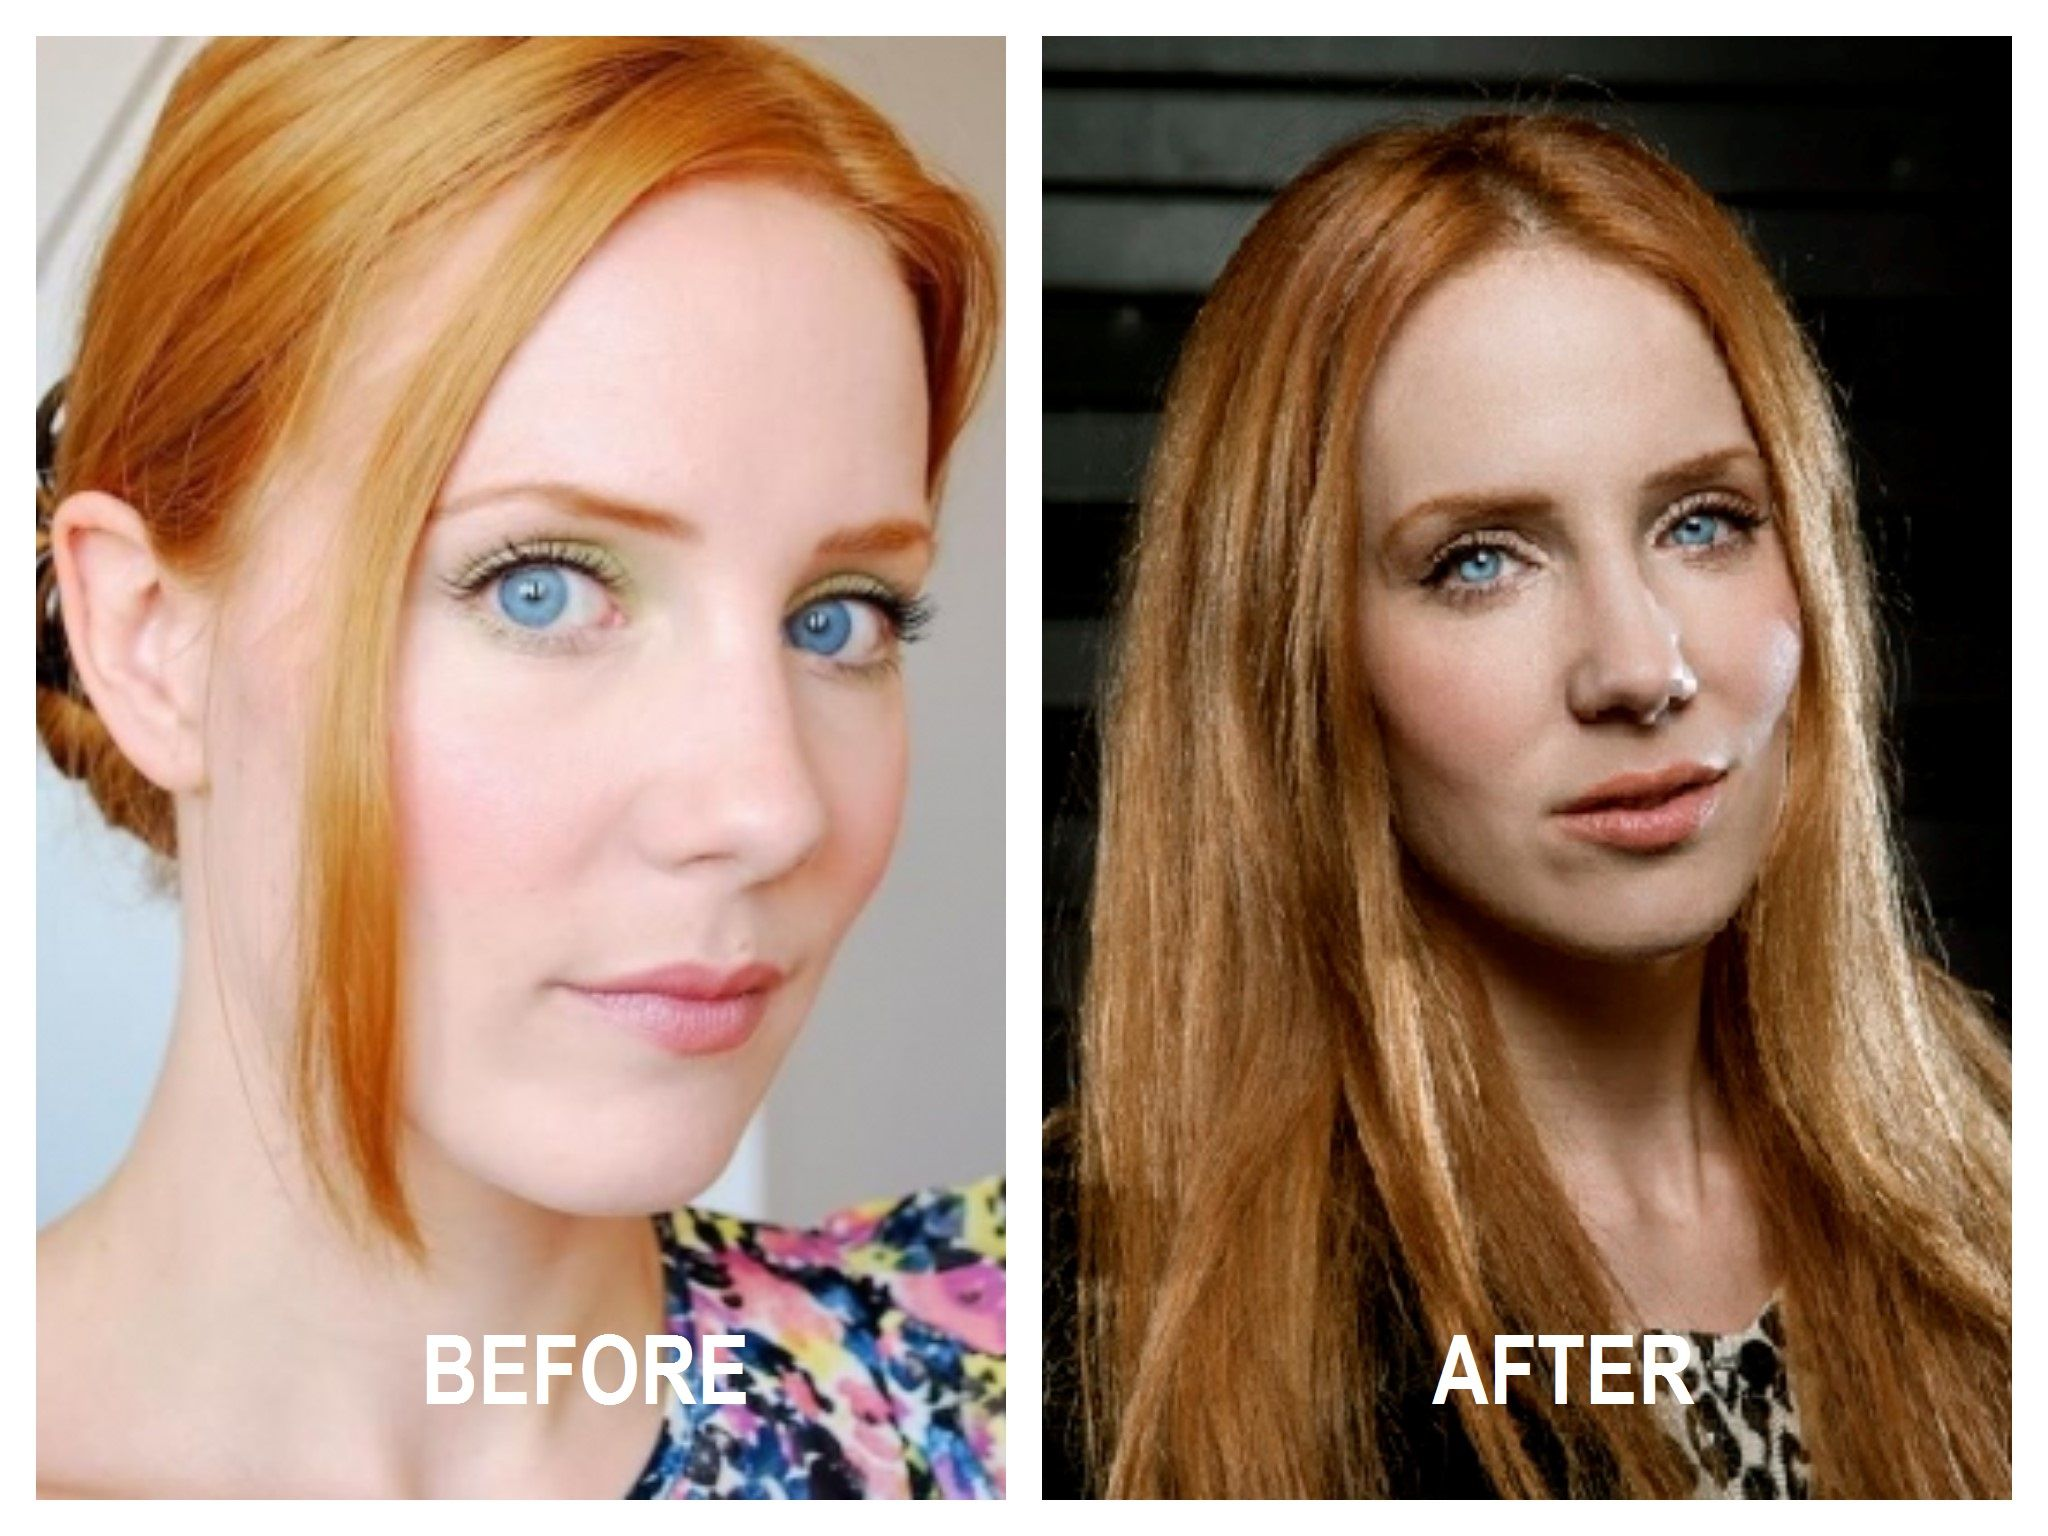 simone simons before and after of plastic surgery.she not needed